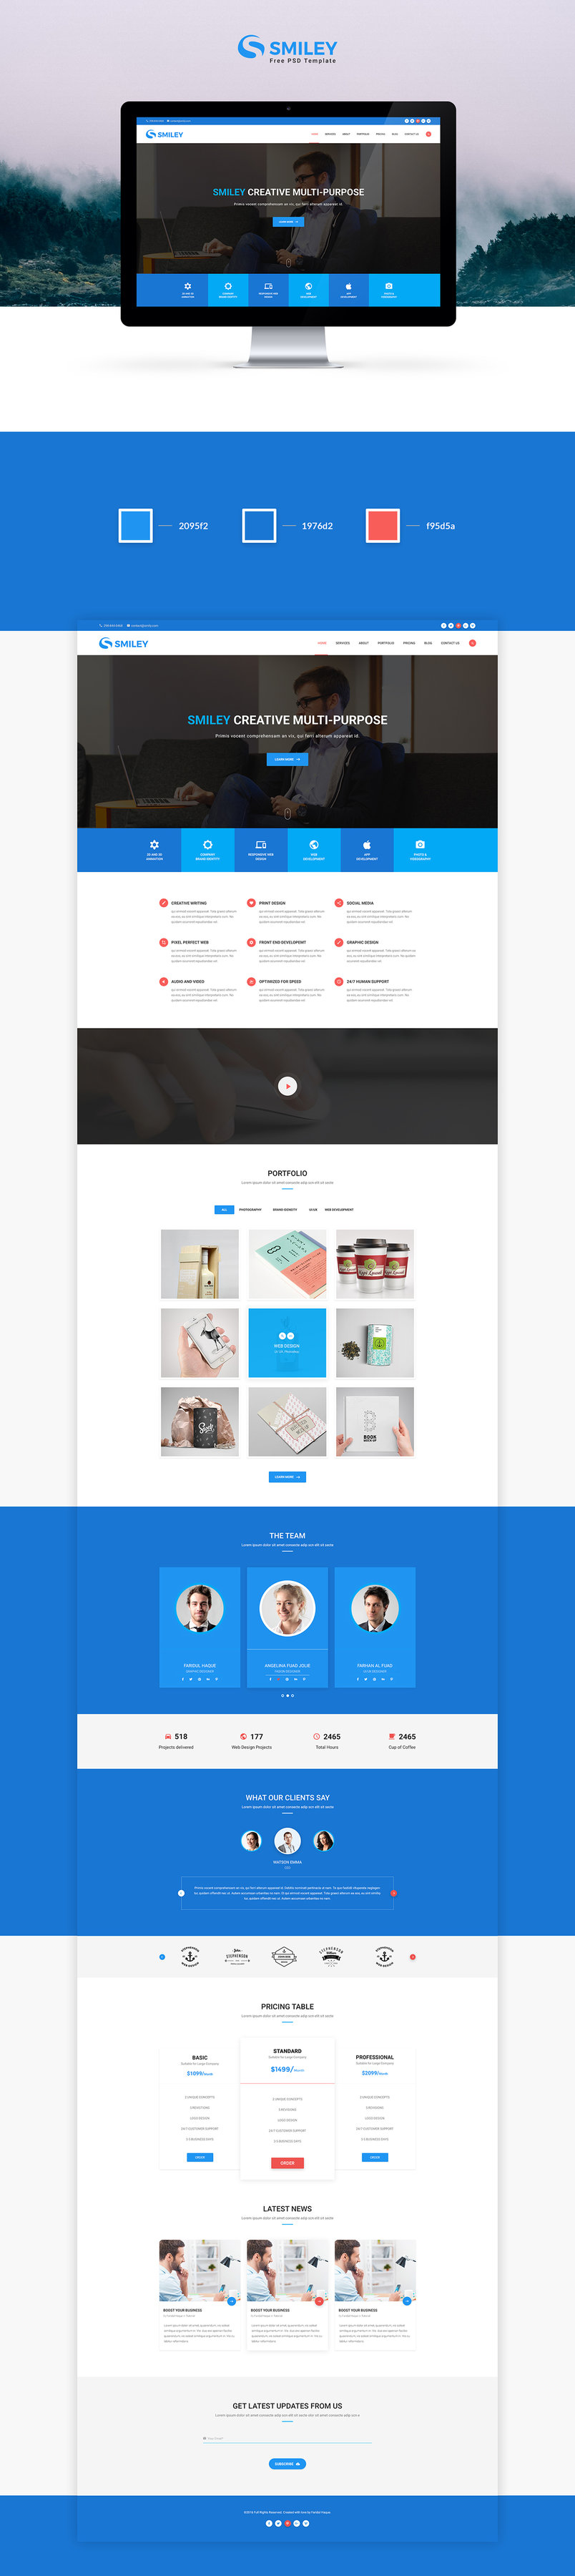 smiley-free-material-design-psd-template-2